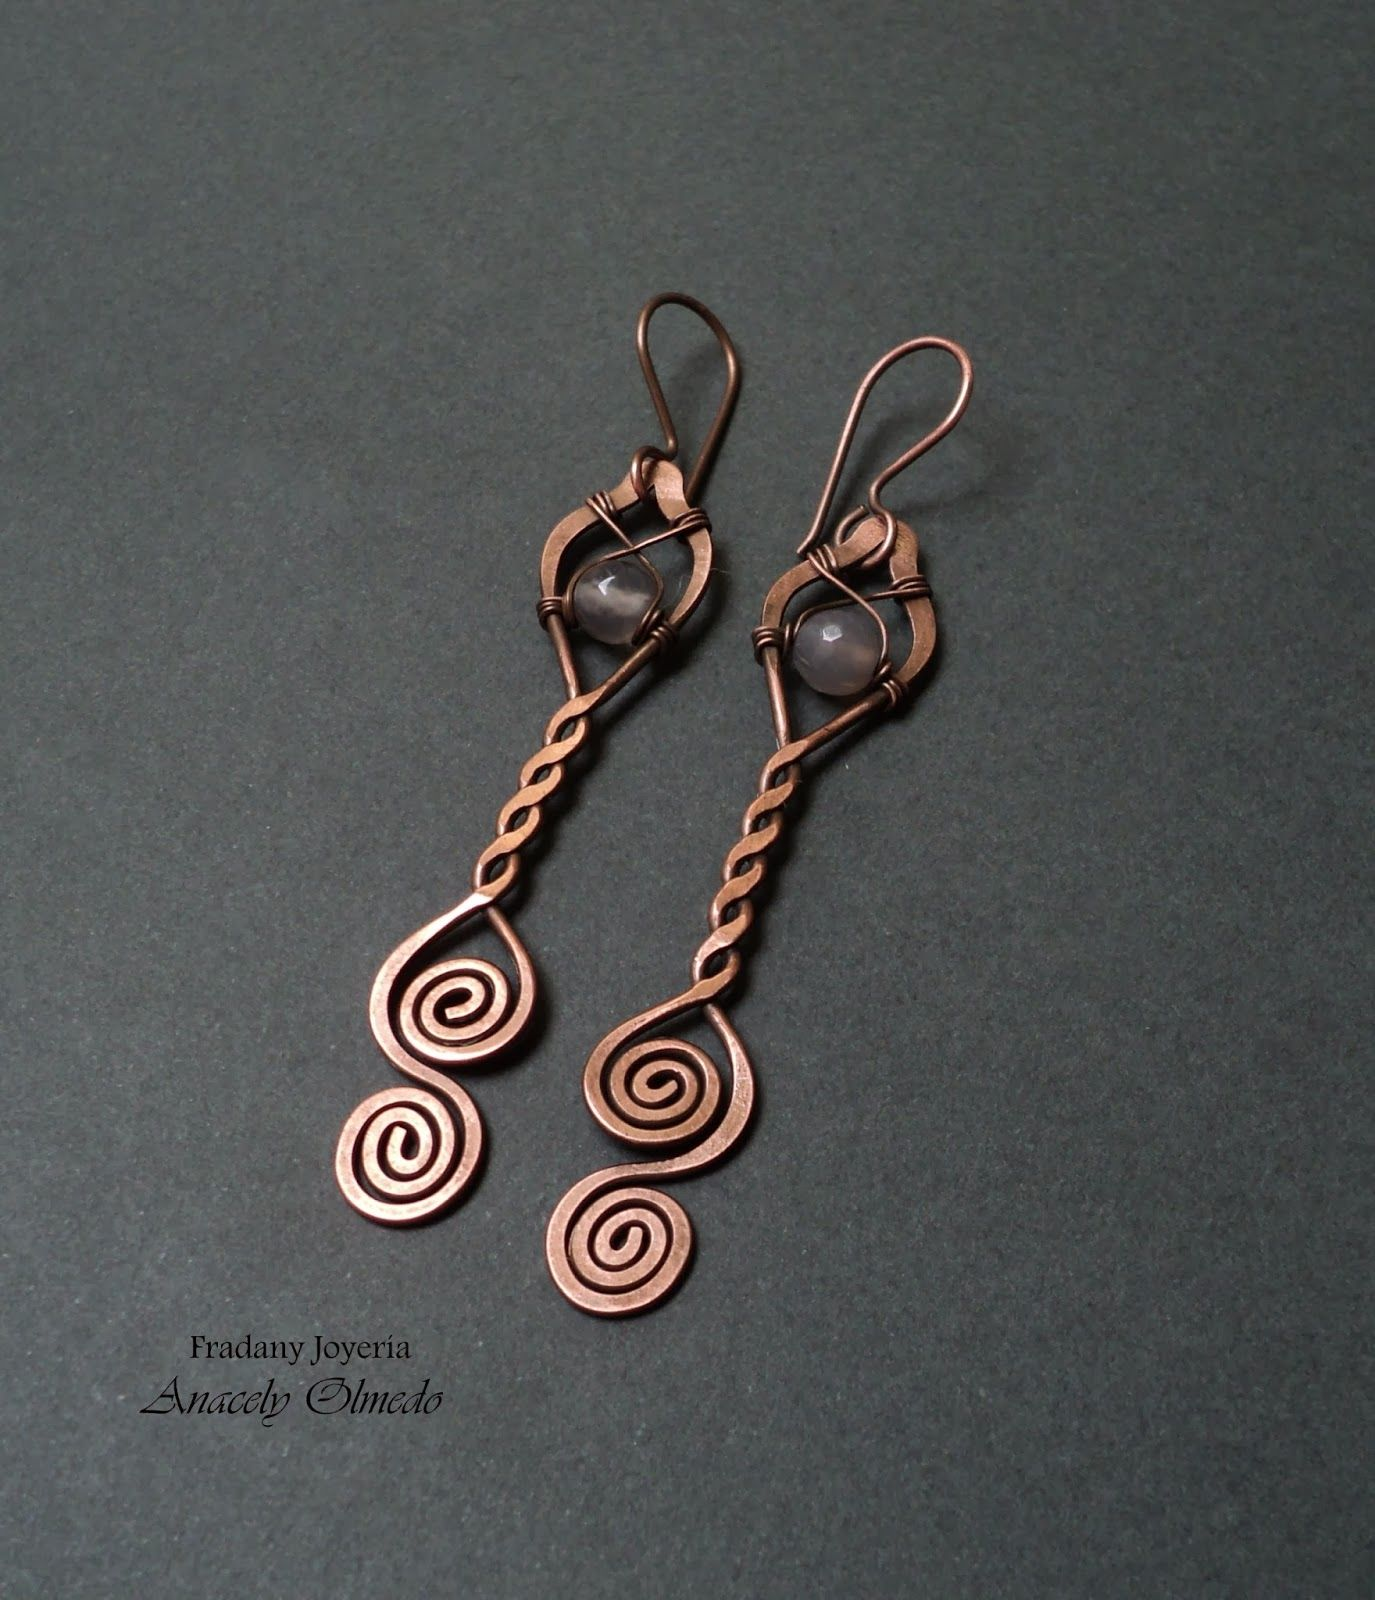 Free Wire Jewelry Making Tutorial Pendant Or Earrings Picture Otherwise In Spanish But No Words Needed